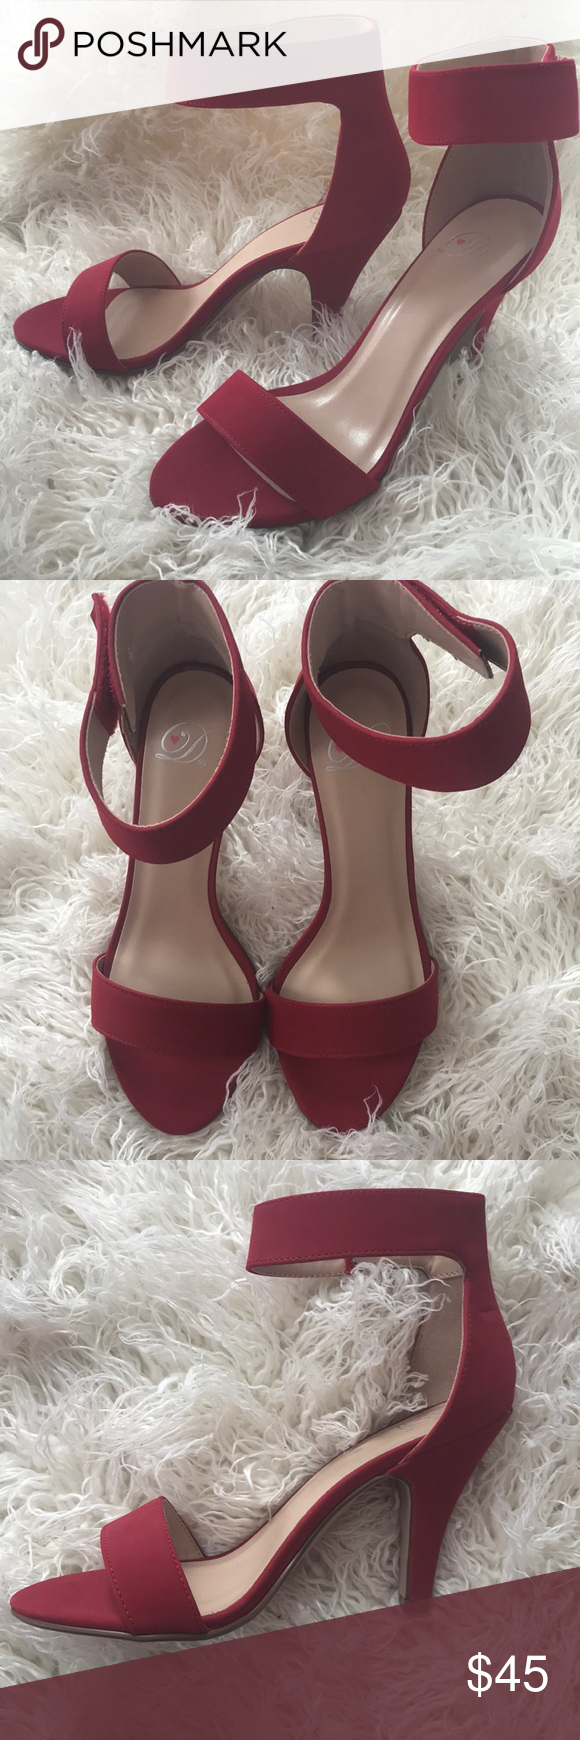 Red healed shoes👠 These shoes have a matte finish. 2 1/2 inch heal, open toe and a velcro angle strap. Beautiful shoes NEVER WORN! No scuffs! 7 1/2 ( true to size) Shoes Heels